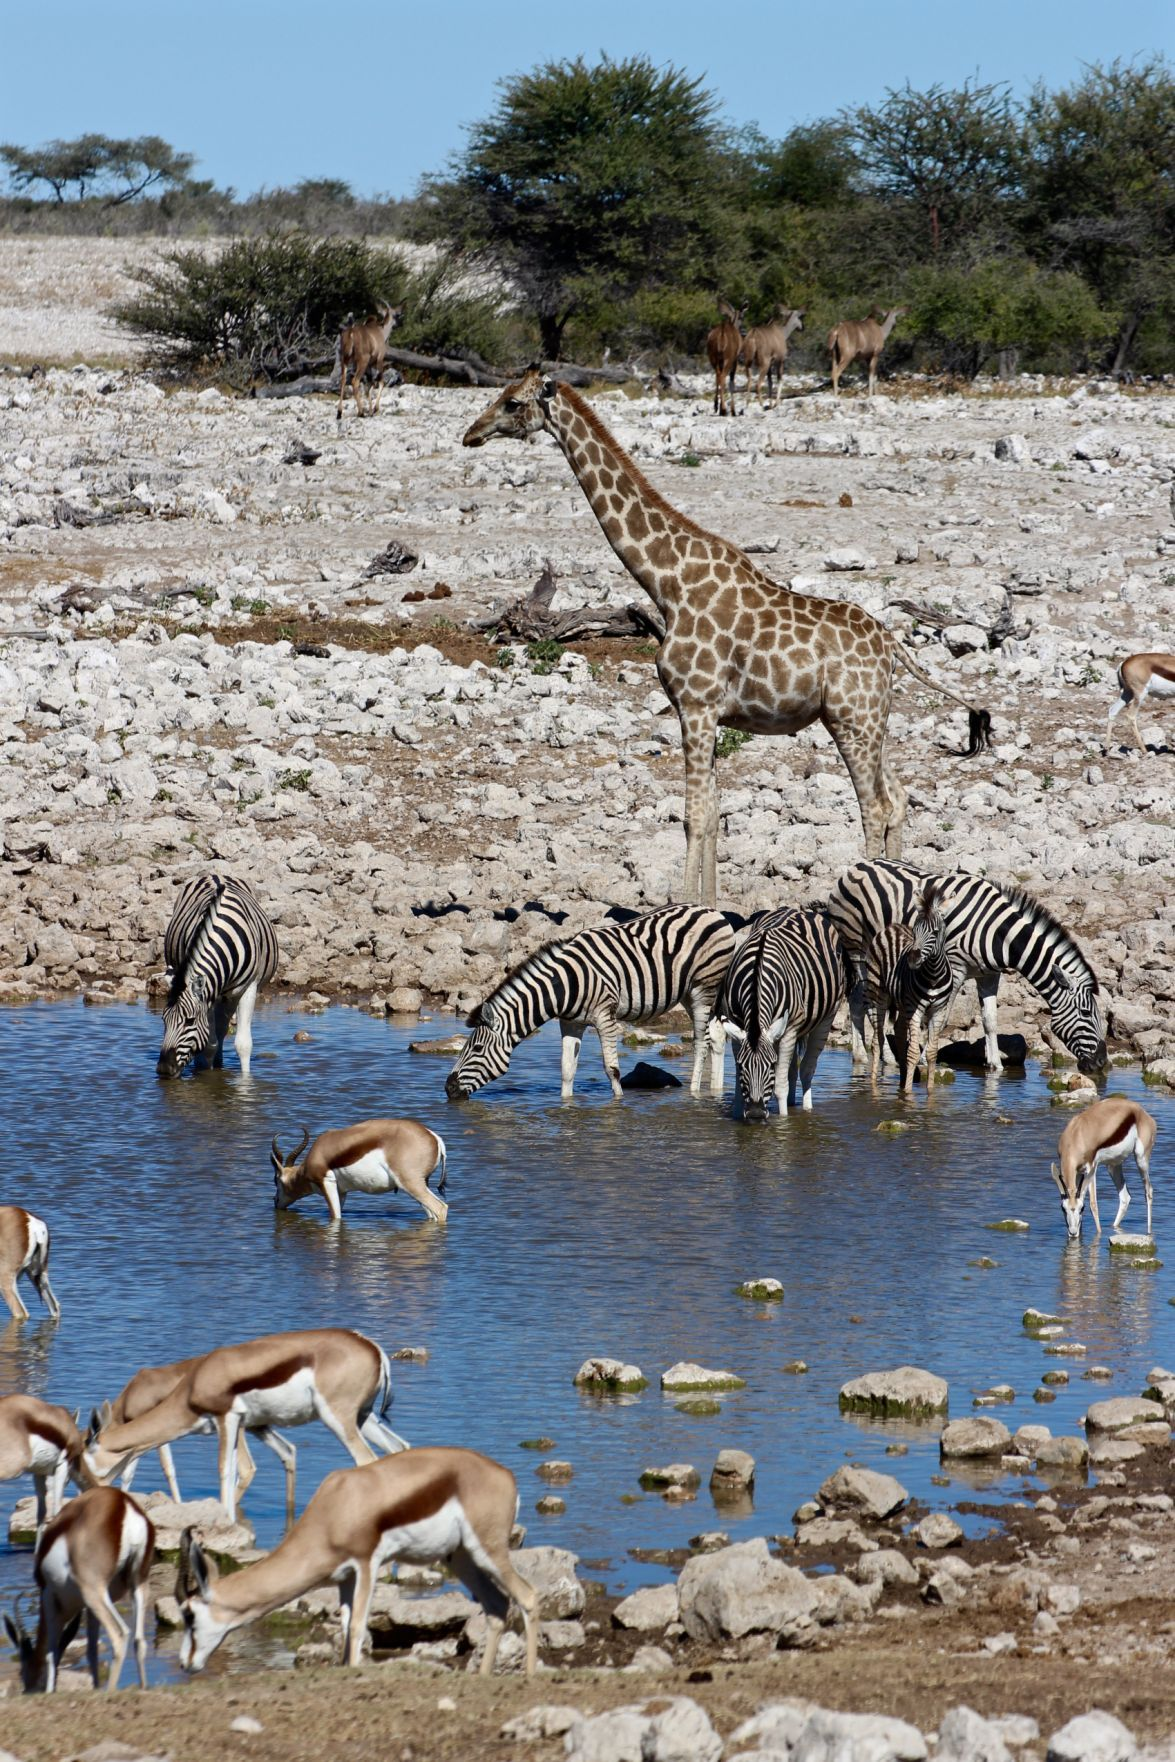 WILDLIFE Midday at the watering hole